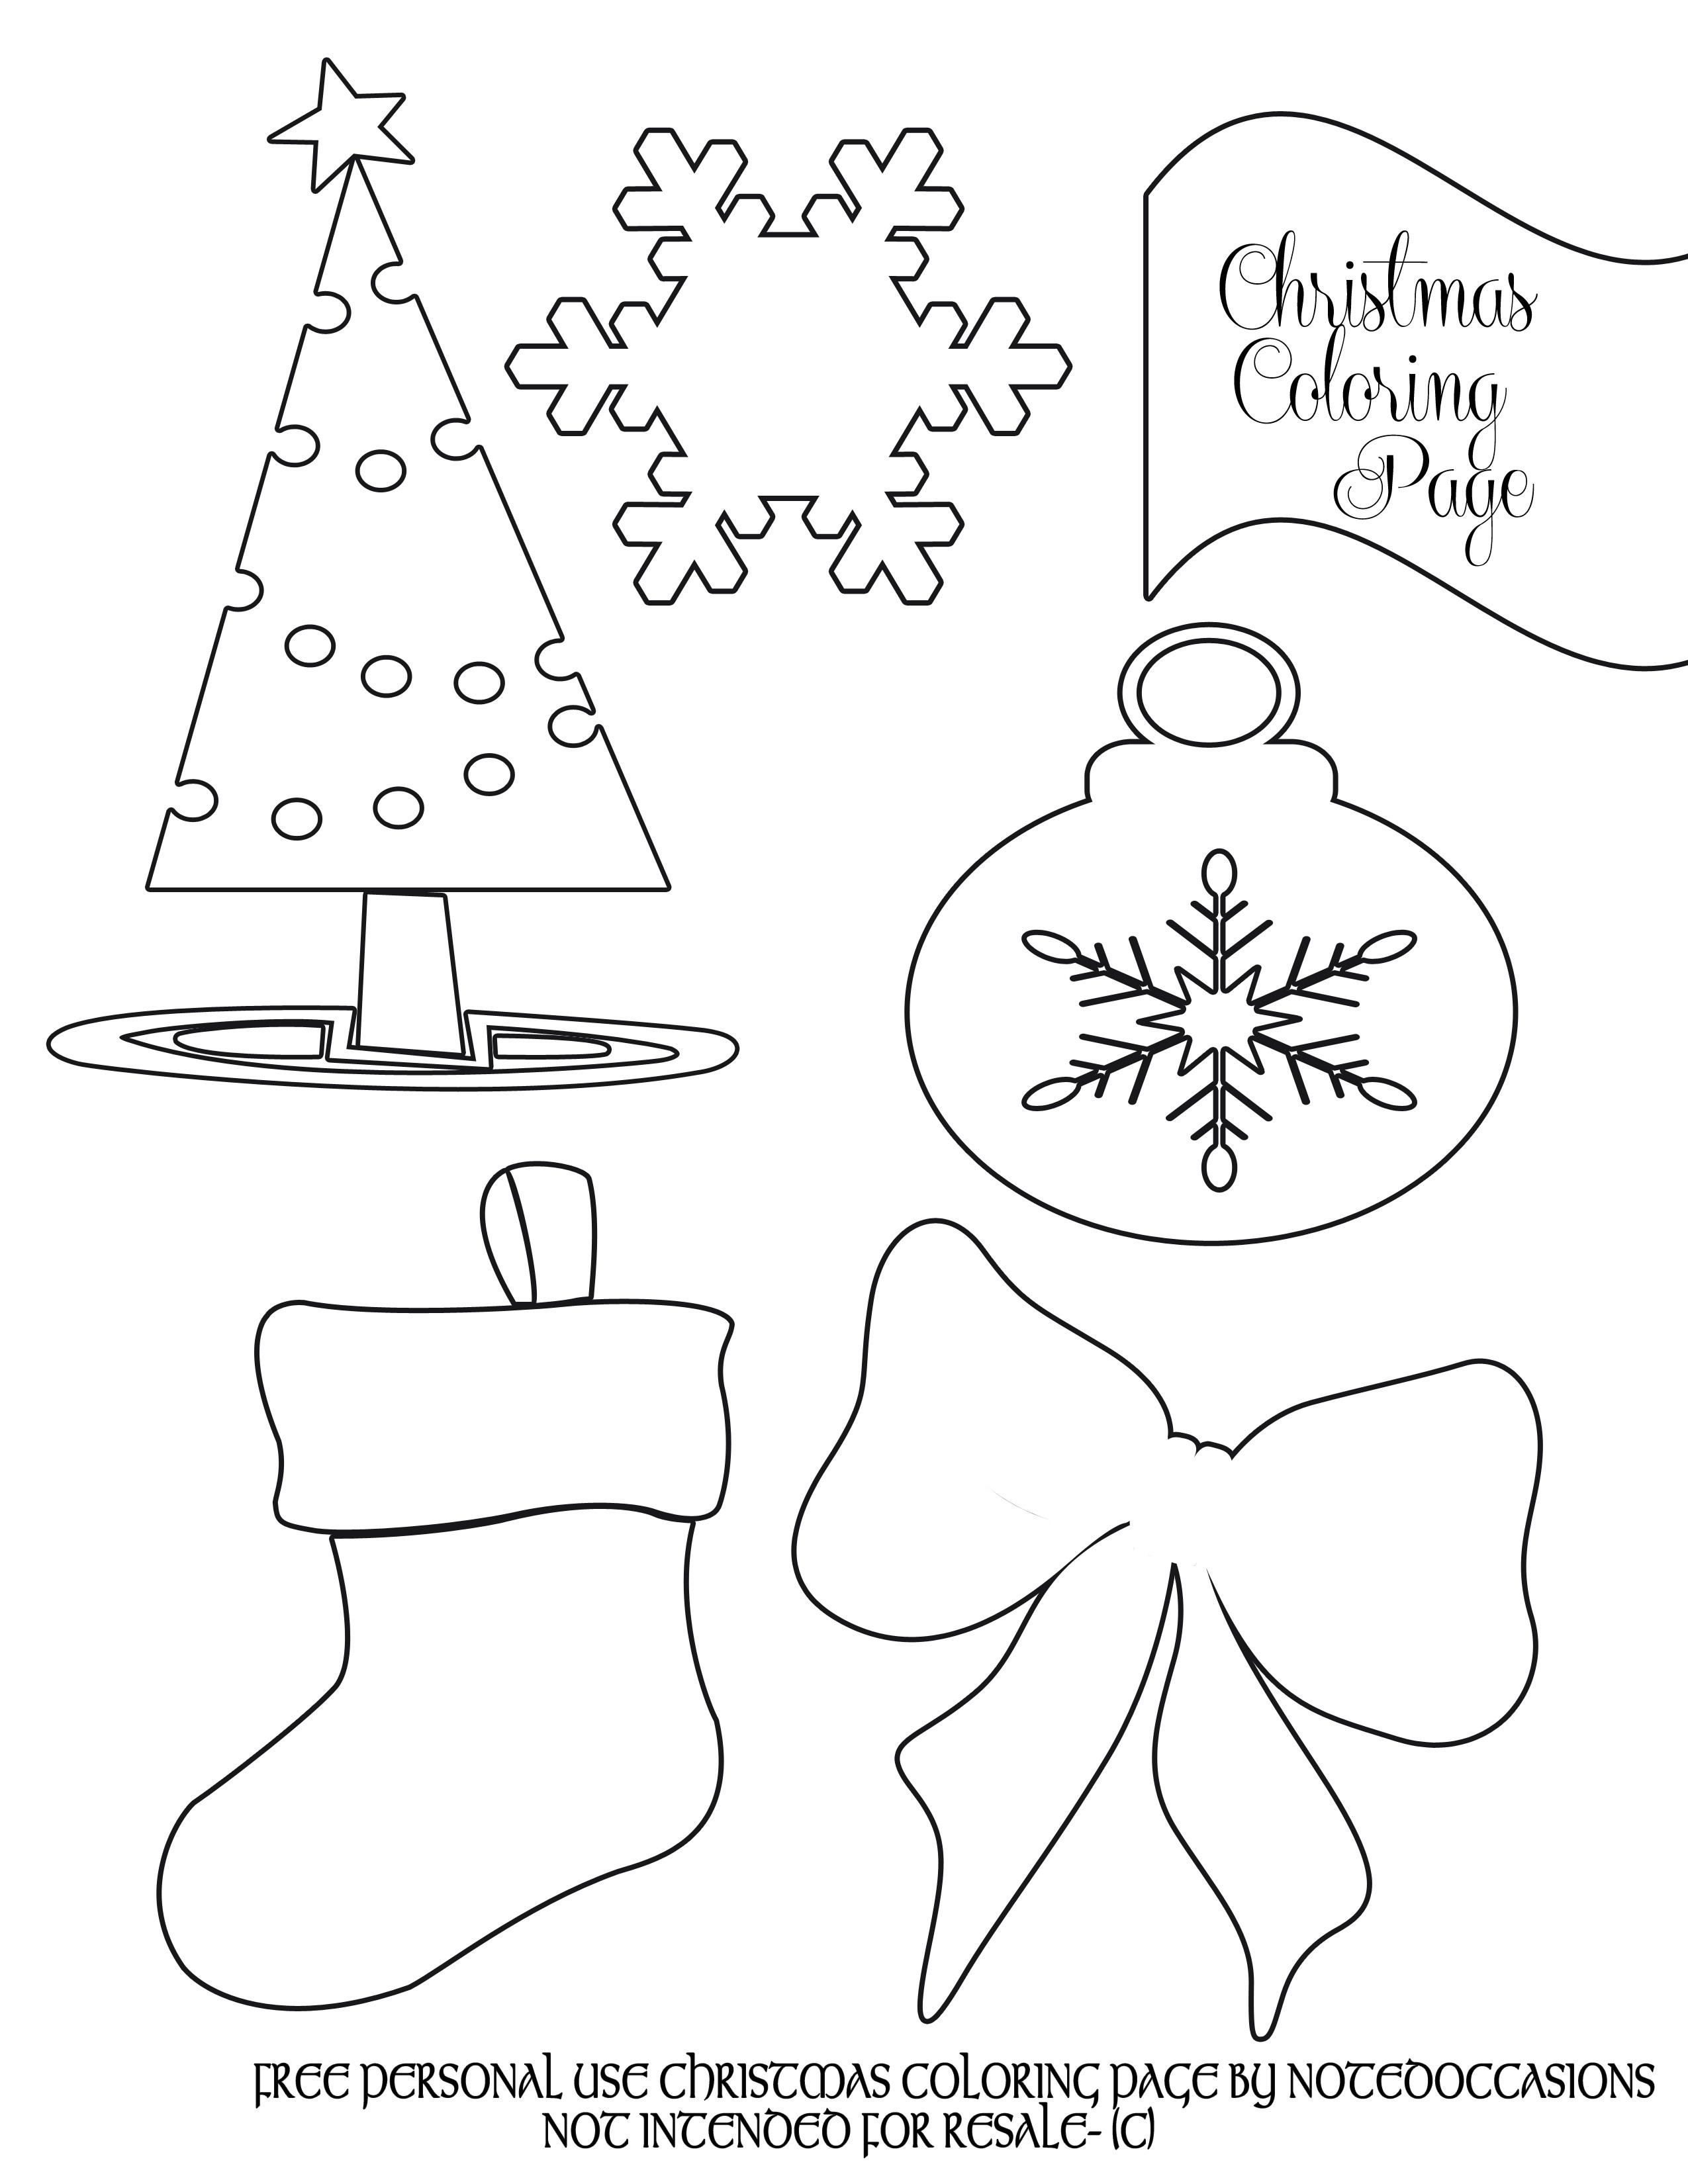 Christmas Colouring In Pages For Preschoolers With Coloring Graphs Refrence Free Printable Preschool